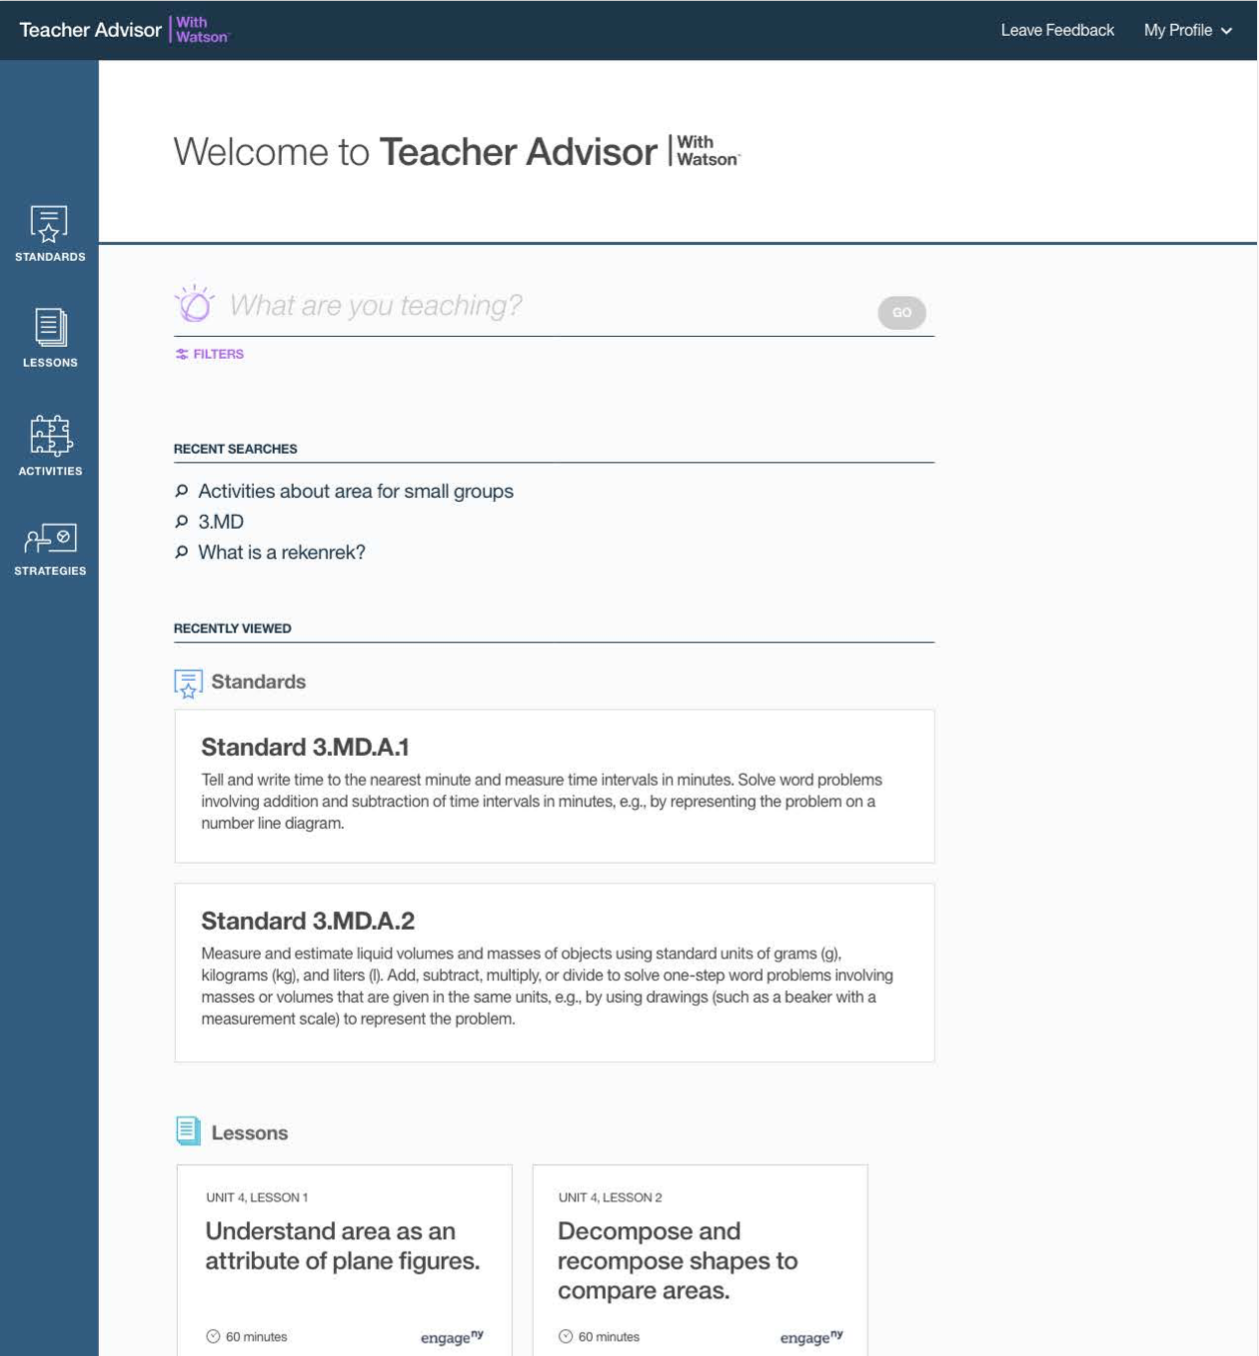 final home page of teacher advisor with watson - watson is a main search element with recent searches, recently viewed standards and lessons